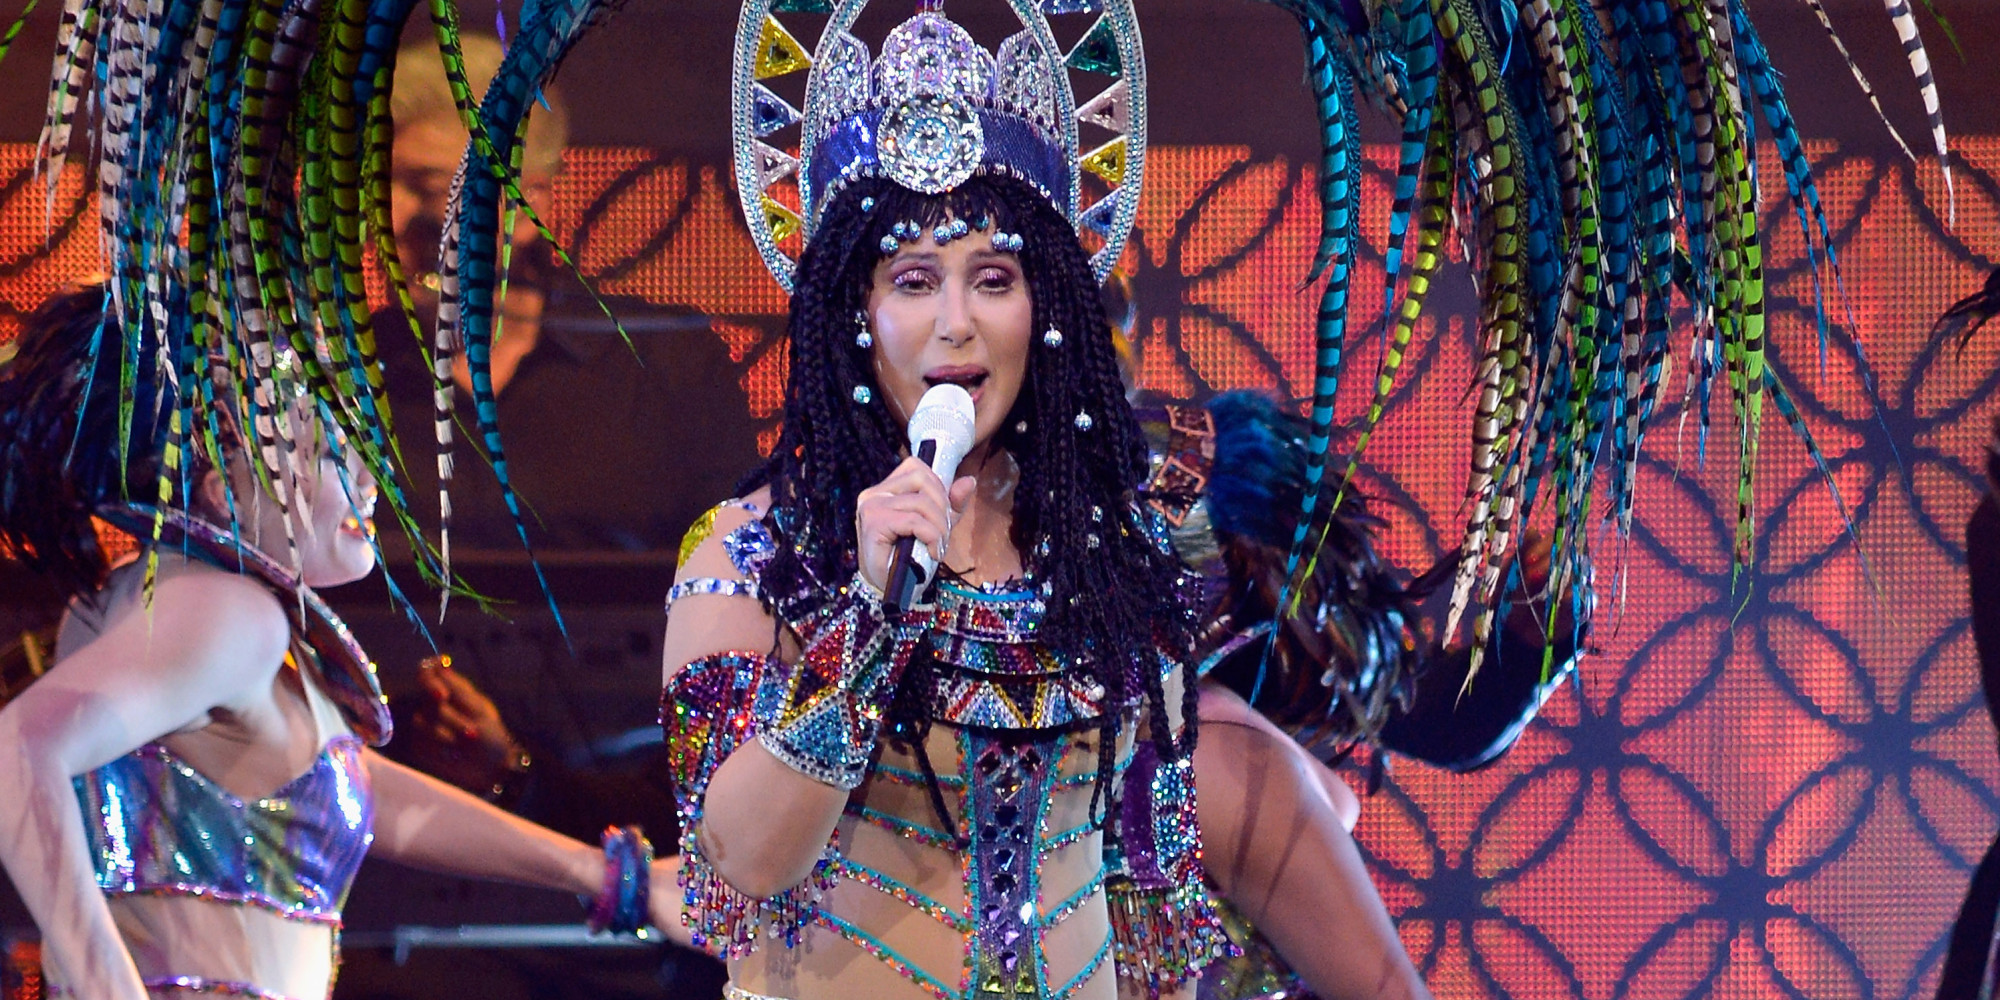 BOSTON, MA - APRIL 09:  Cher performs in concert at TD Garden on April 9, 2014 in Boston, Massachusetts.  (Photo by Paul Marotta/Getty Images)